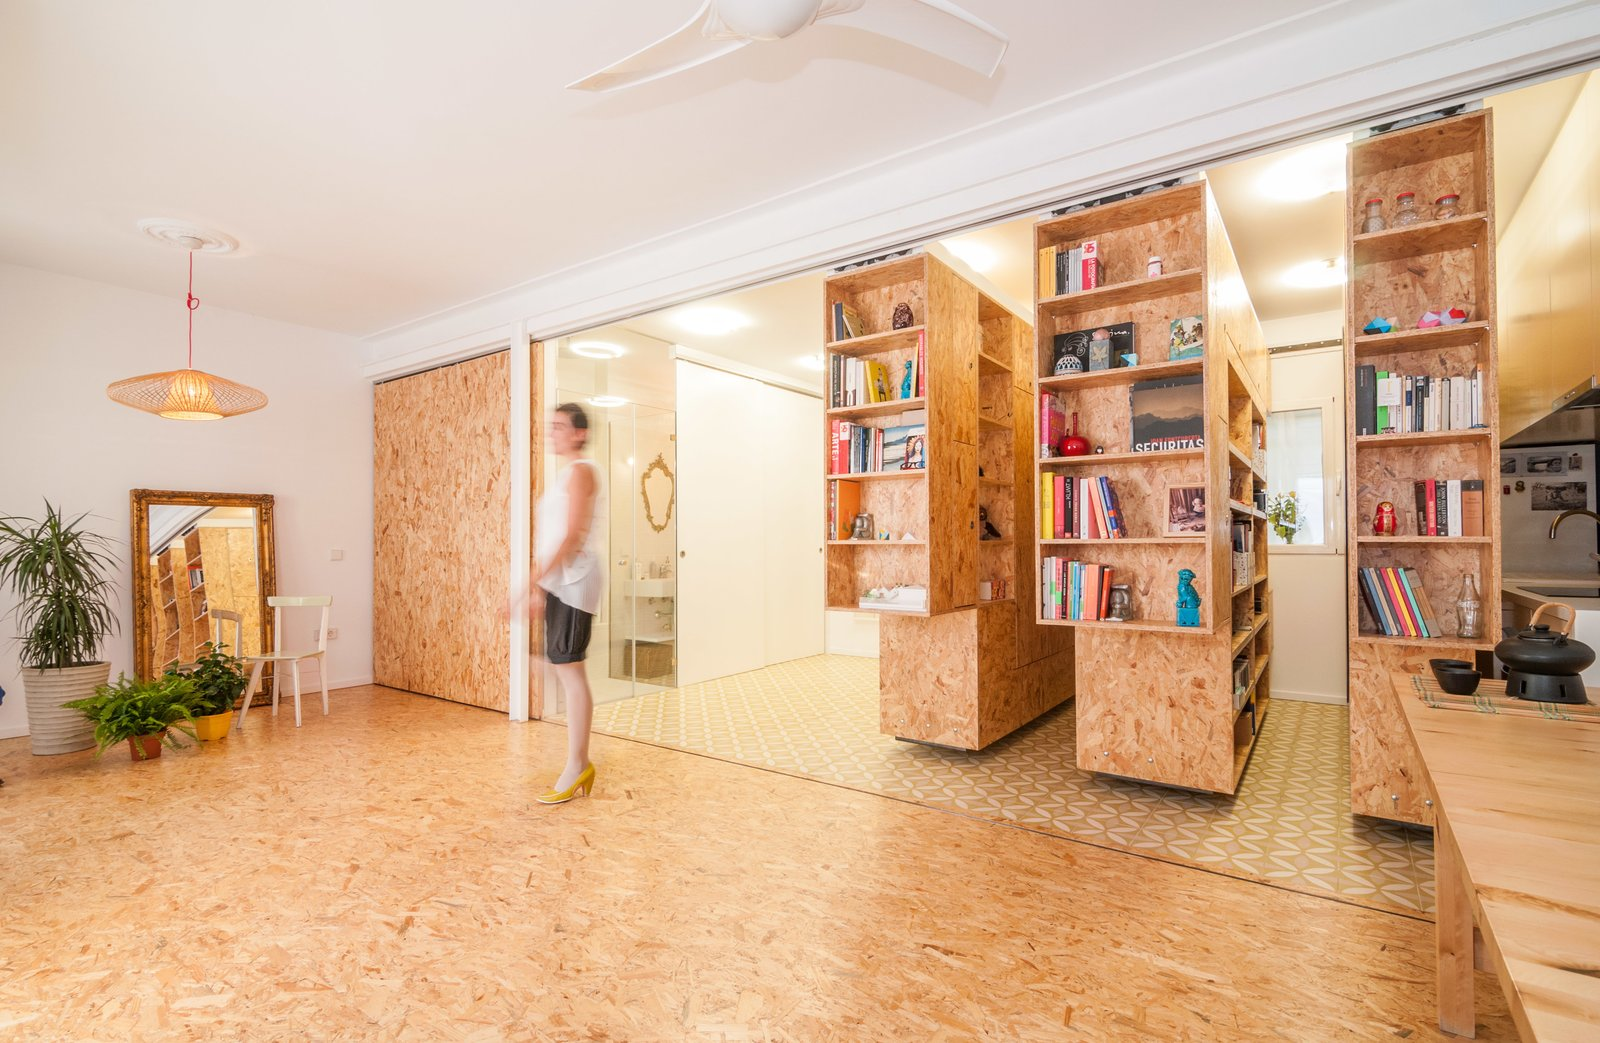 #interior #indoor #inside #particleboard #shelving #storage #smallspaces #modern #tracksystem #bookcase #bookshelf #slidingshelves   Tagged: Storage Room and Shelves Storage Type.  Best Photos from 7 Surprising Shelving Ideas For the Creative Organizer